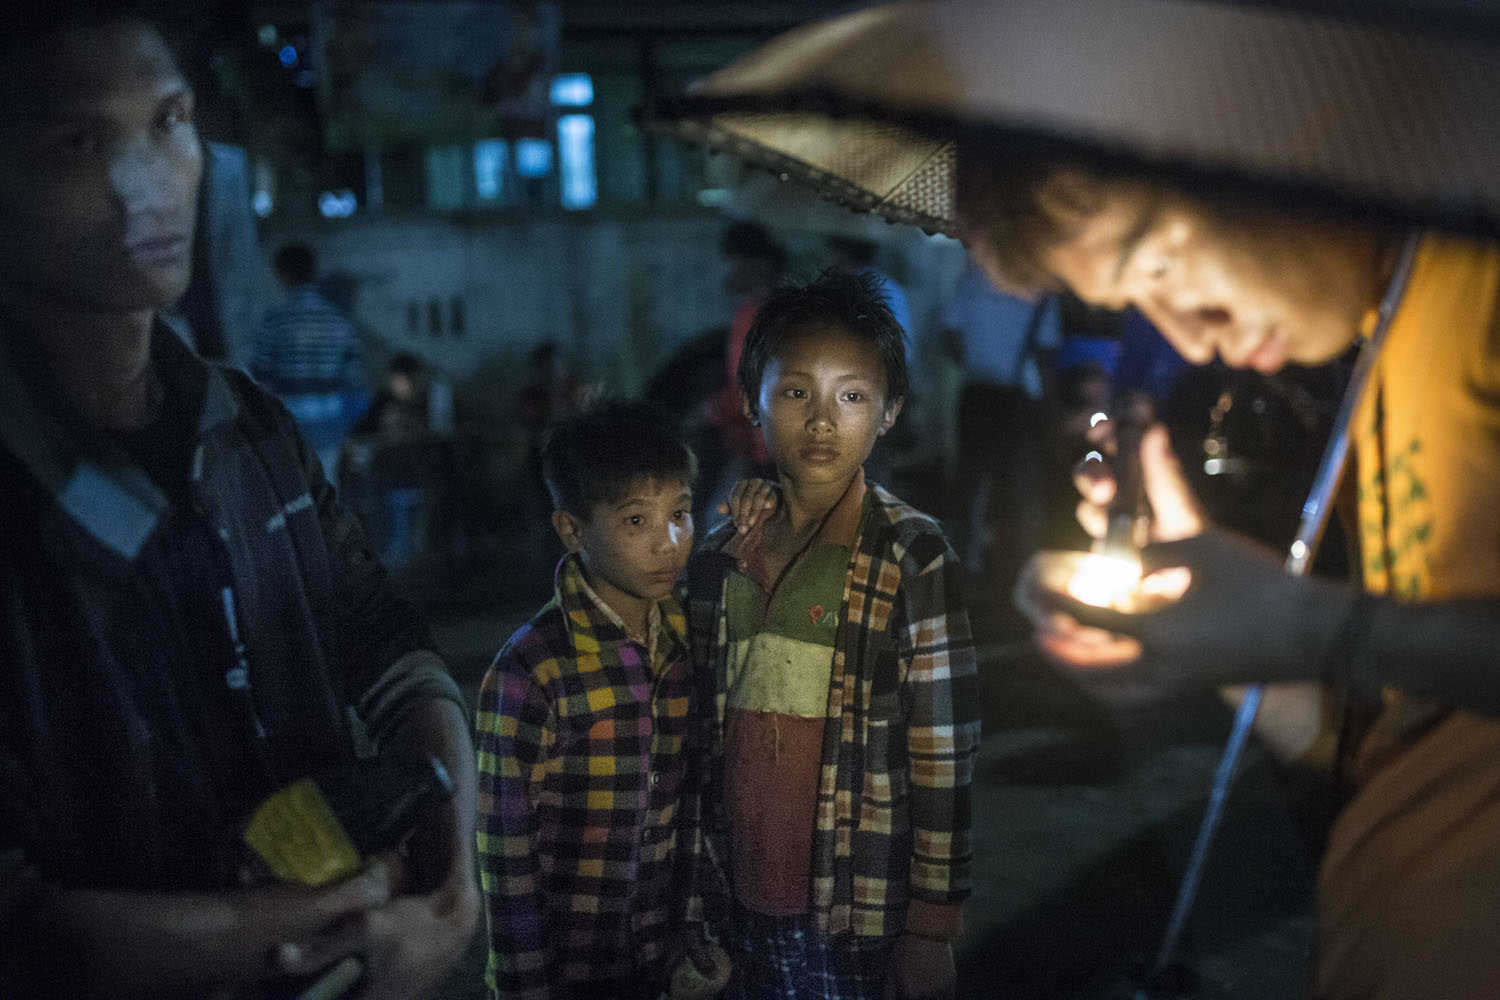 Seven-year-old Breng Aung and his brother who lives in a Kachin refugee camp in a Kachin baptist church in Lone Khin, wait as a jade buyer inspect the stone that they are trying to sell at the jade market, in Lone Khin, Hpakant, April 2015. They were trying to sell the small low quality stones for 2,000 kyats ($2)